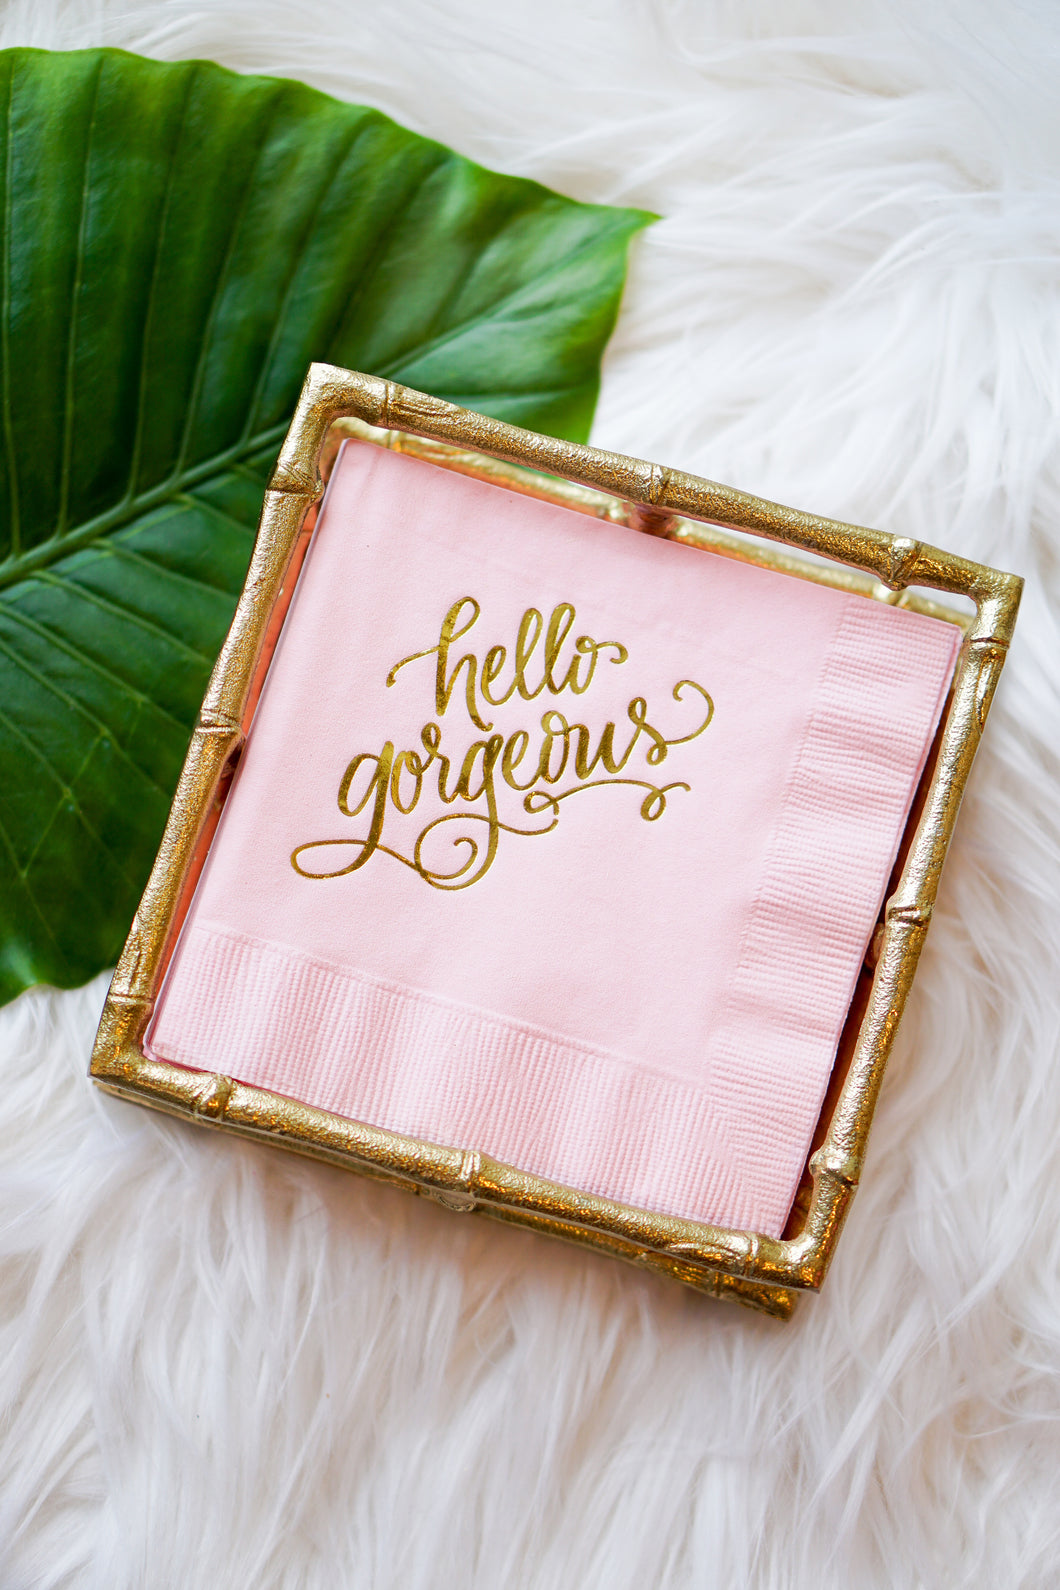 Hello gorgeous cocktail napkins